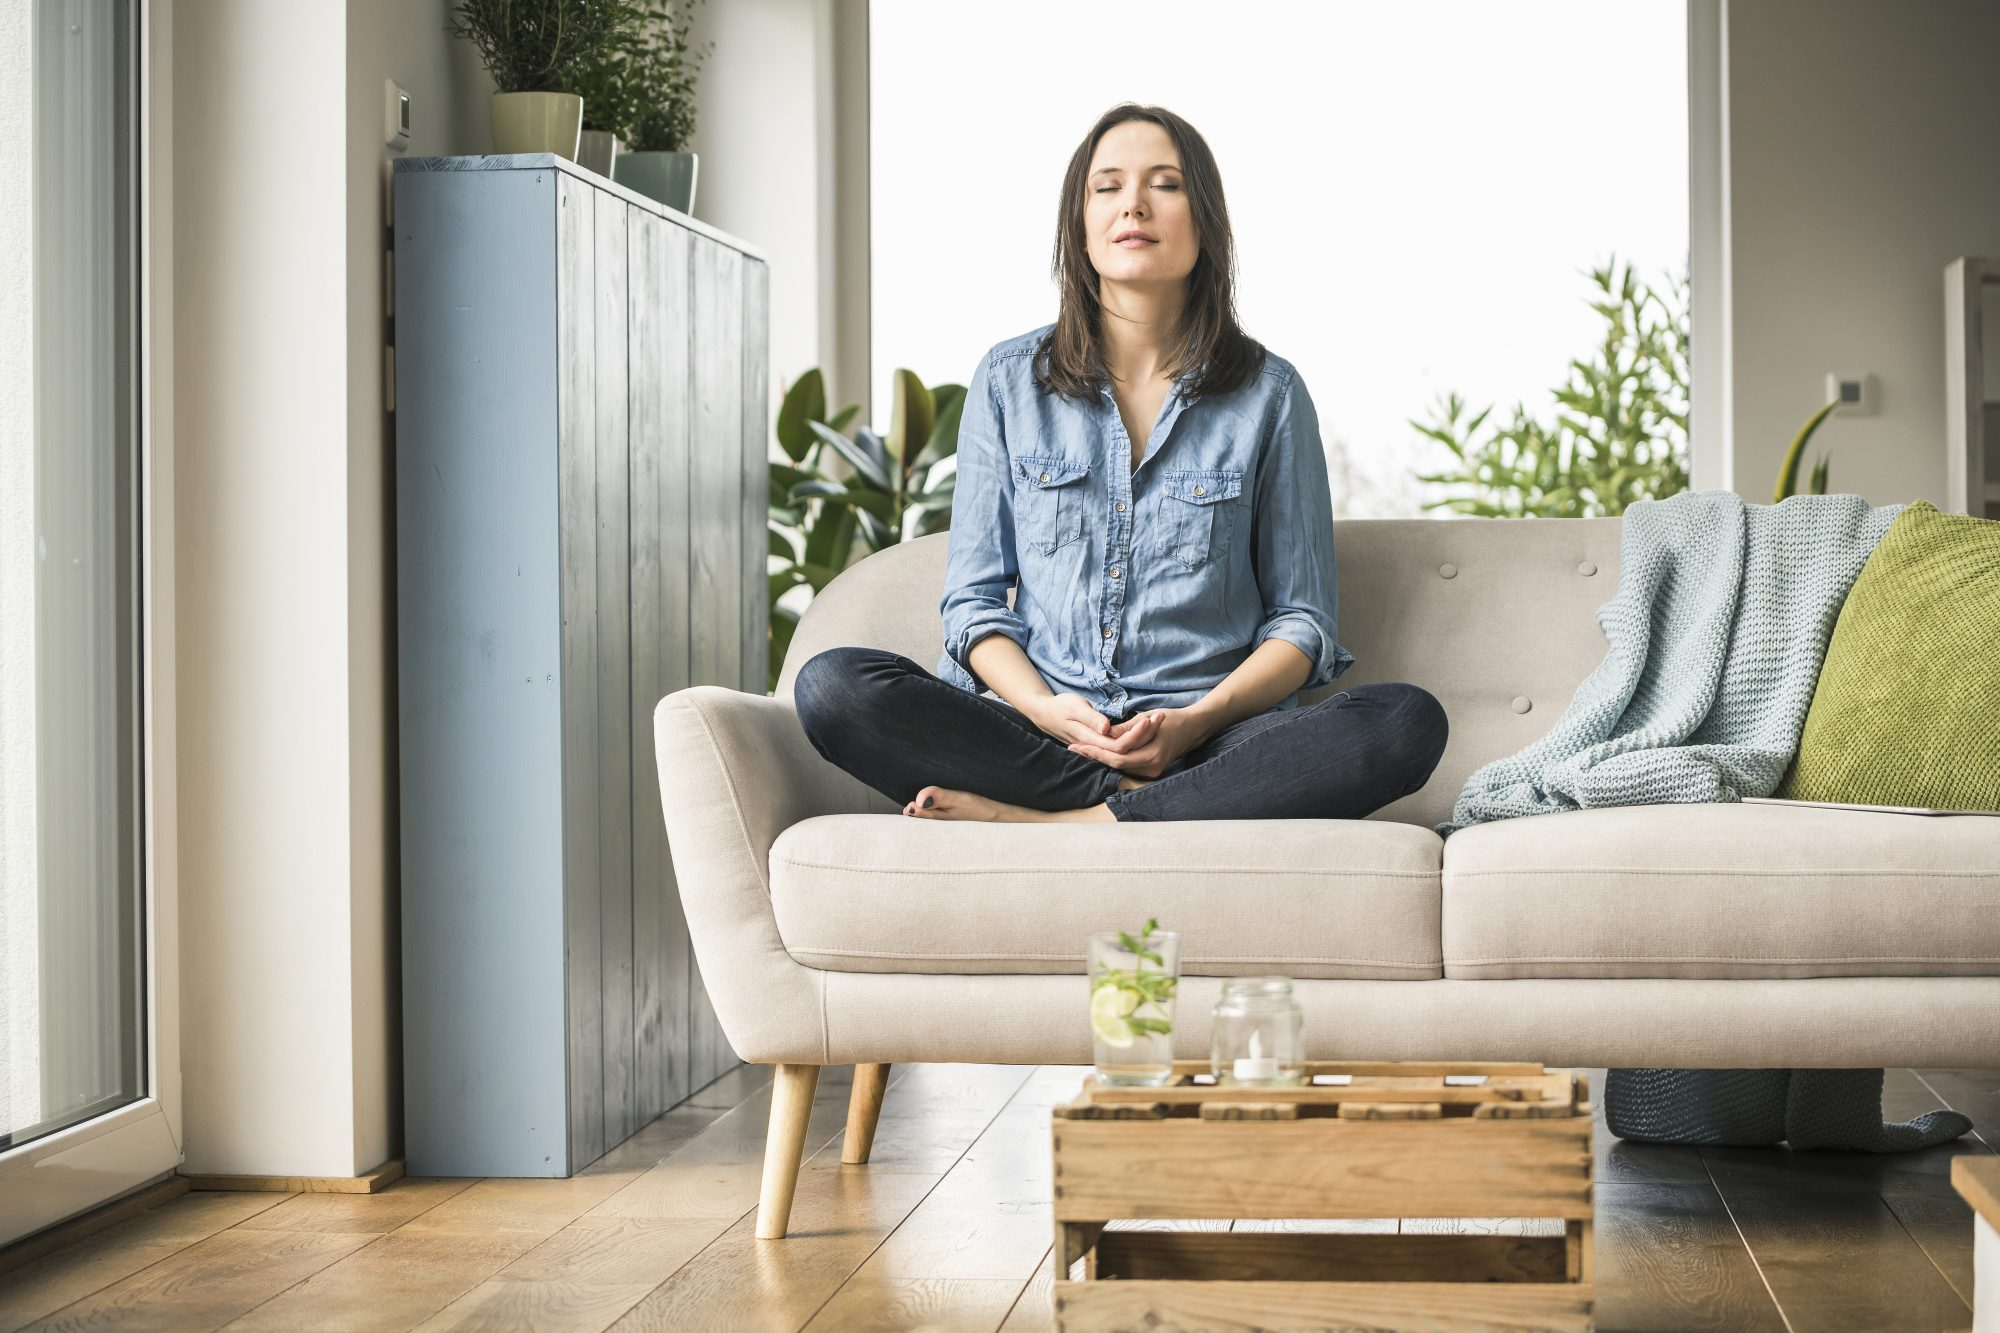 woman meditating on couch